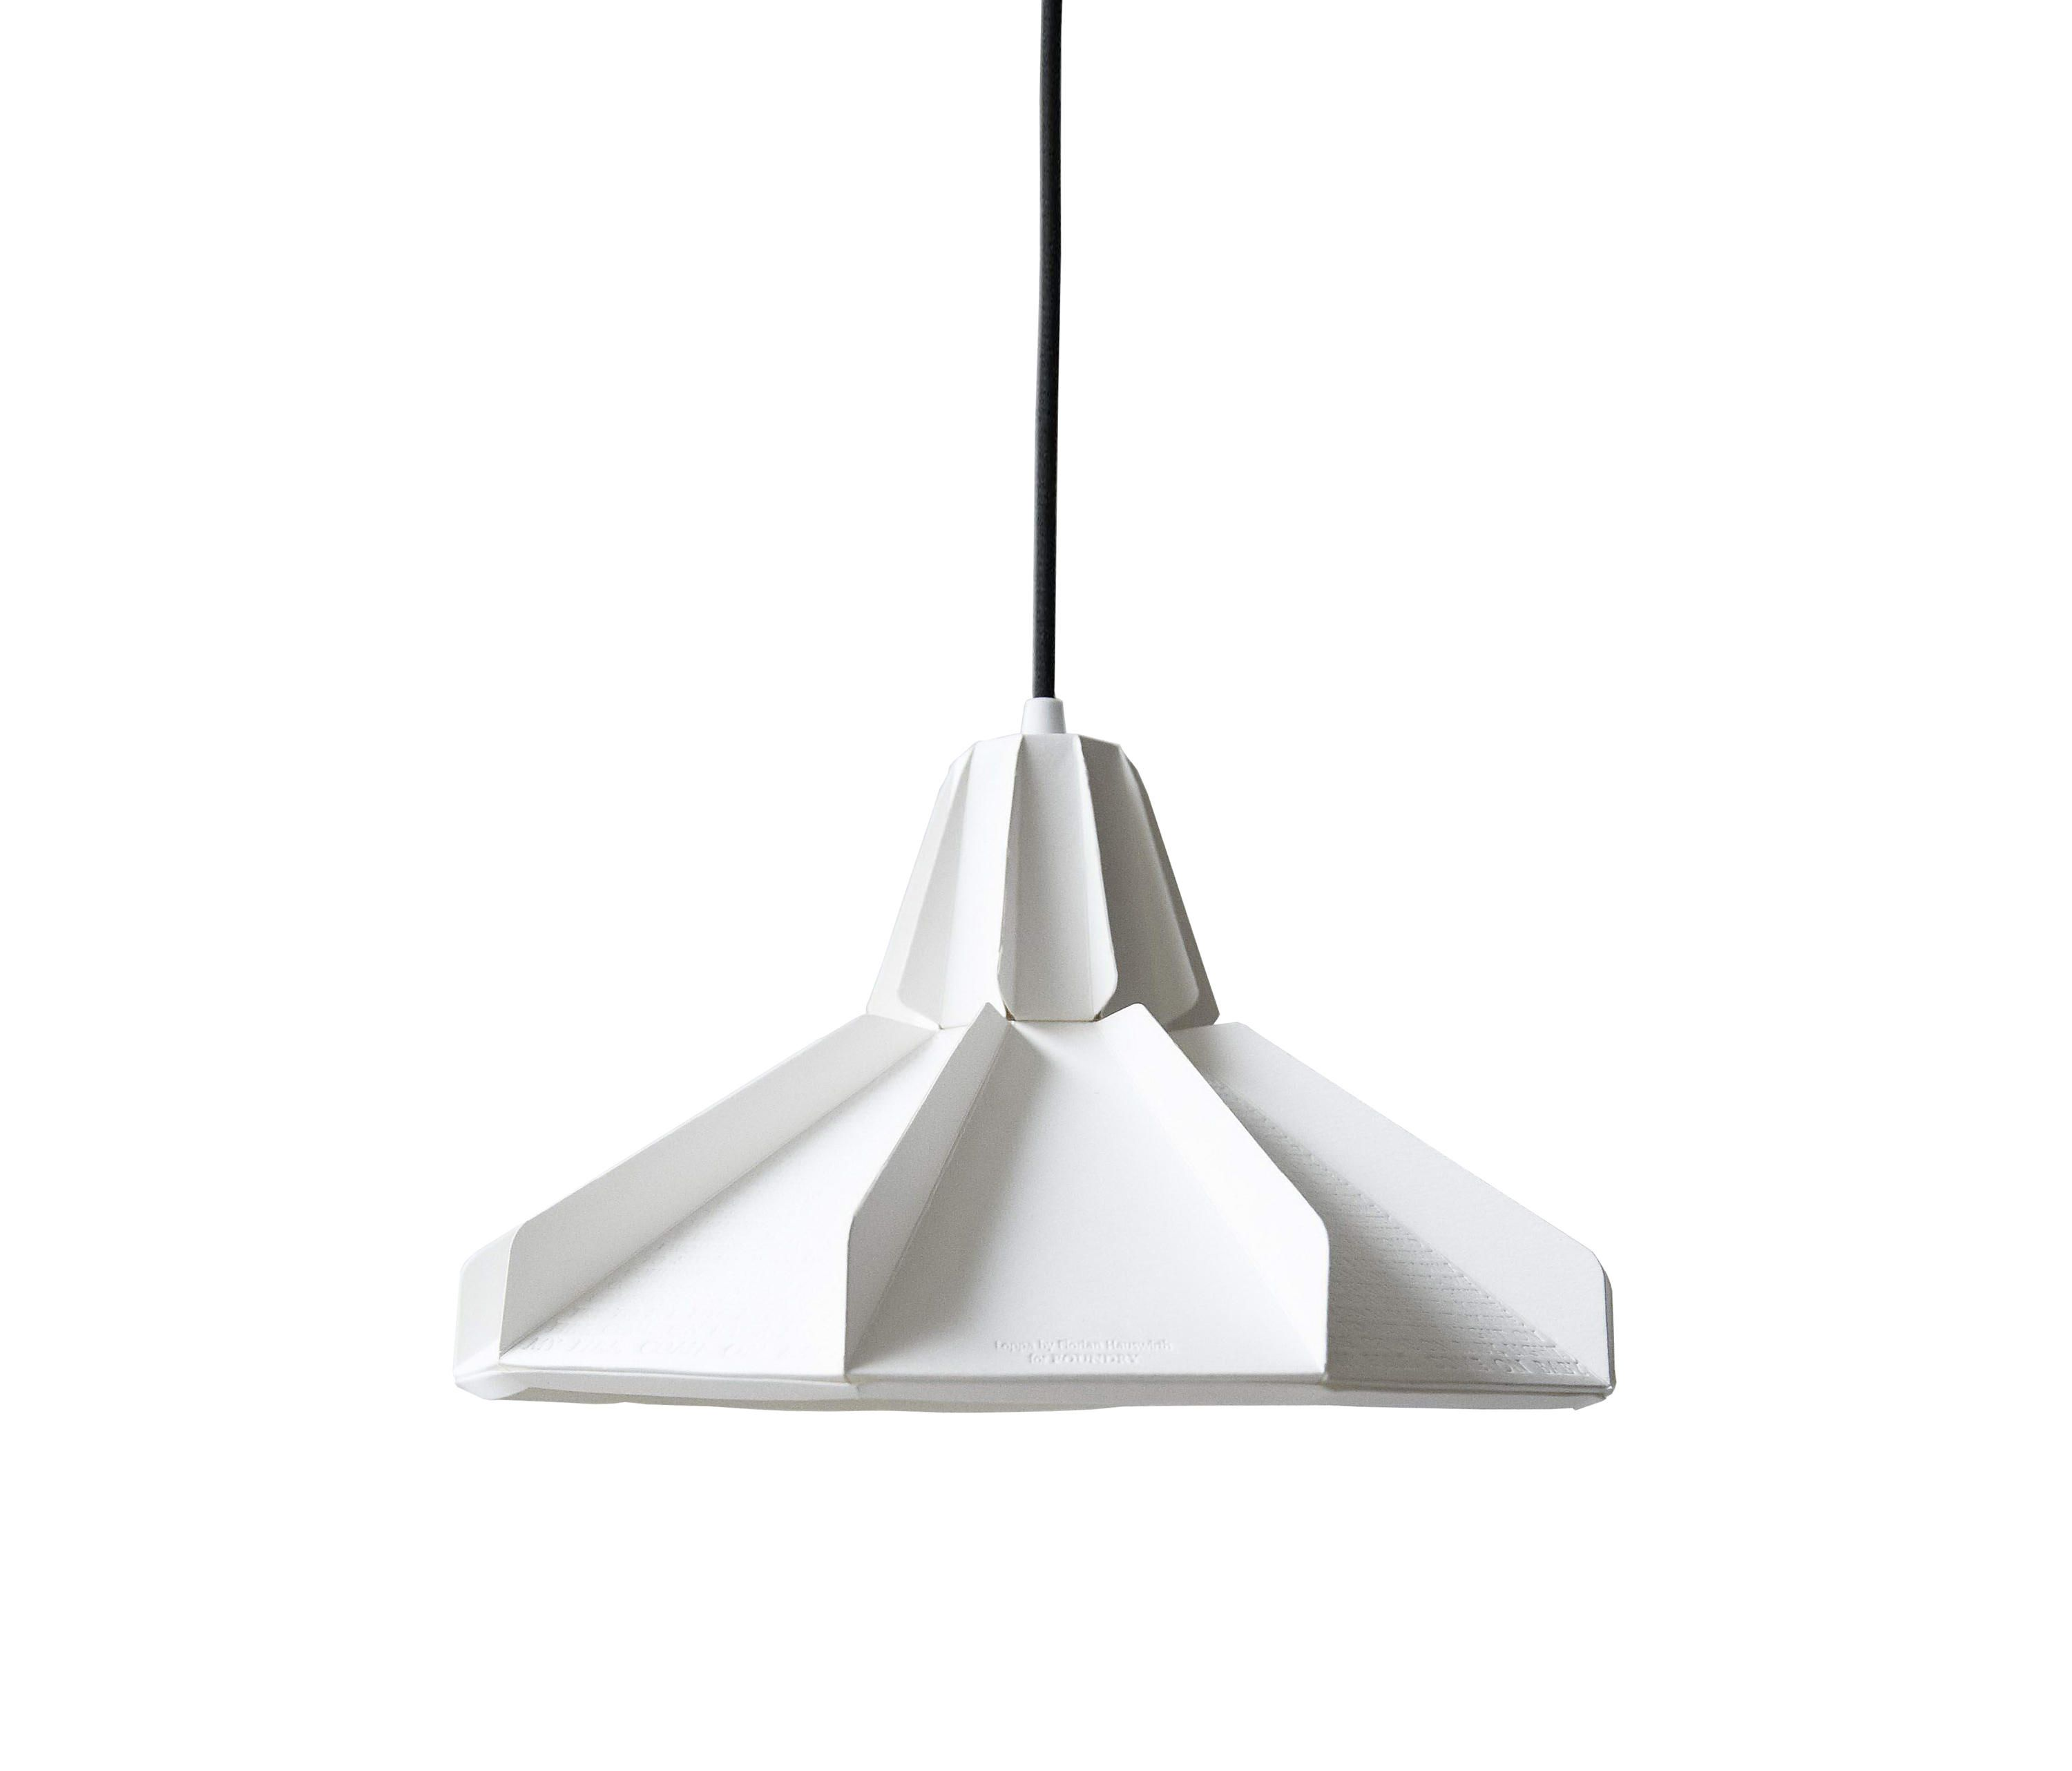 Made entirely out of paper the pendant lamp surrounds the light